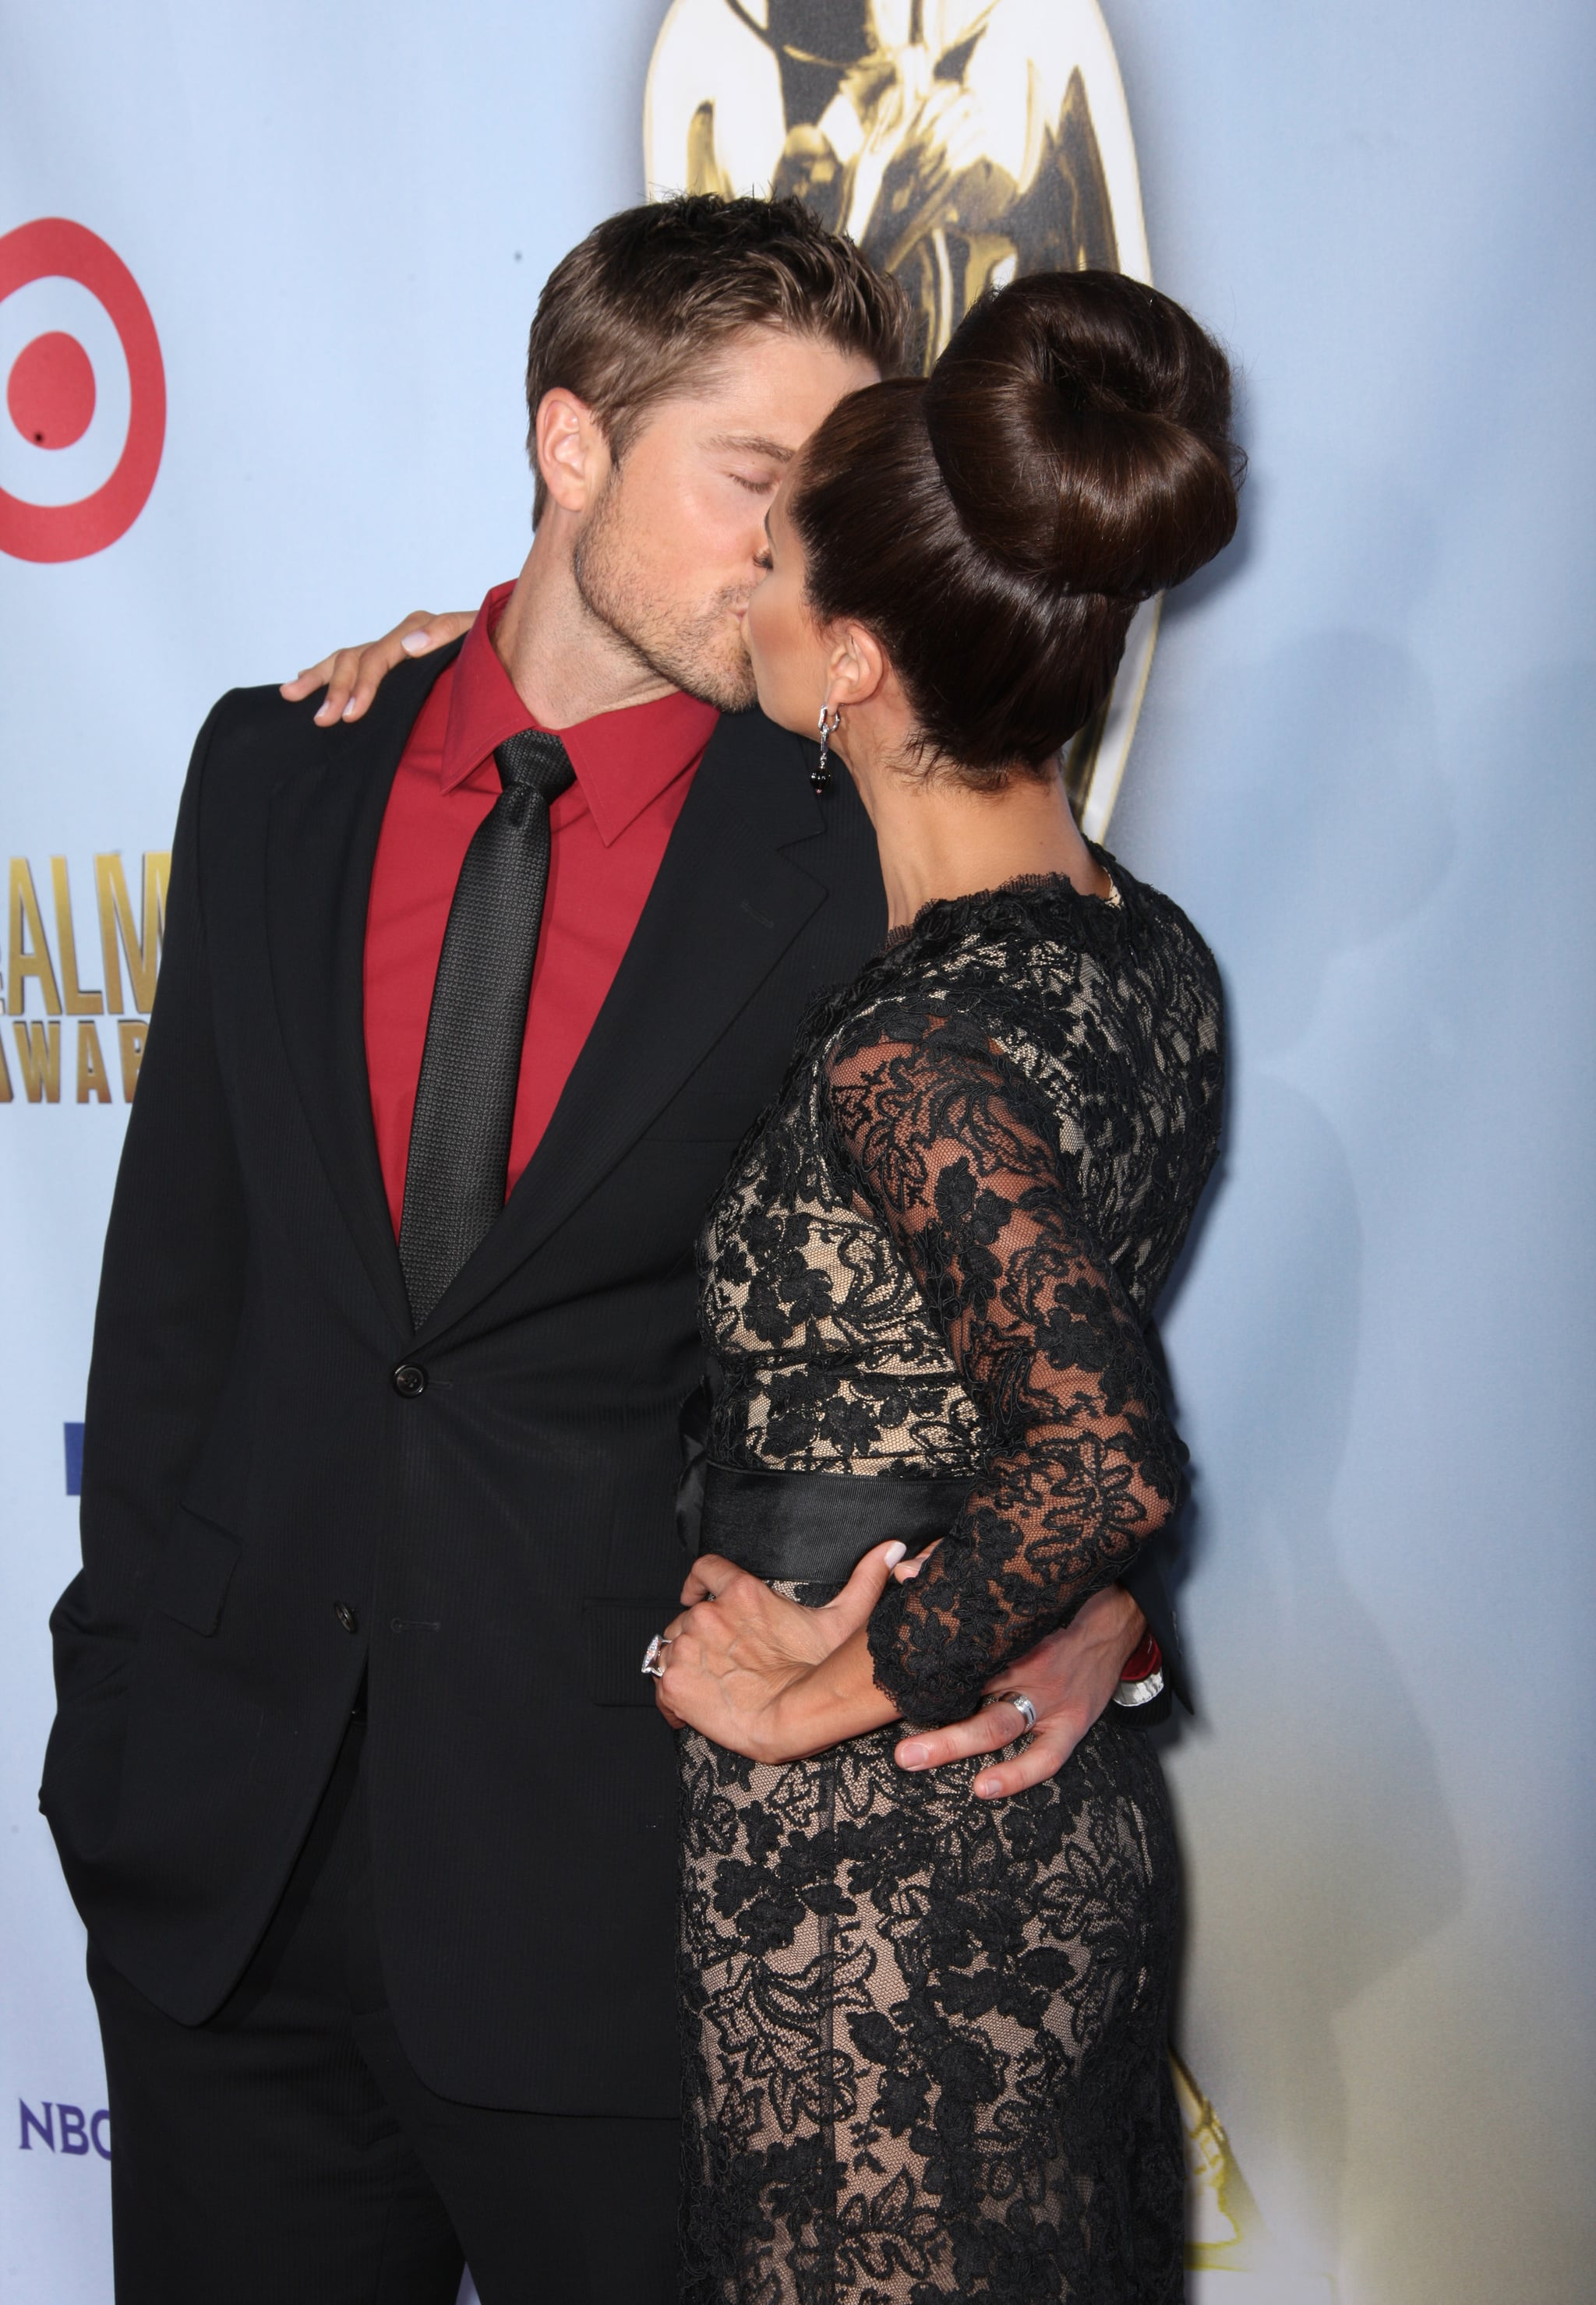 Roselyn Sanchez kissed her husband Eric Winter at the ALMA Awards.